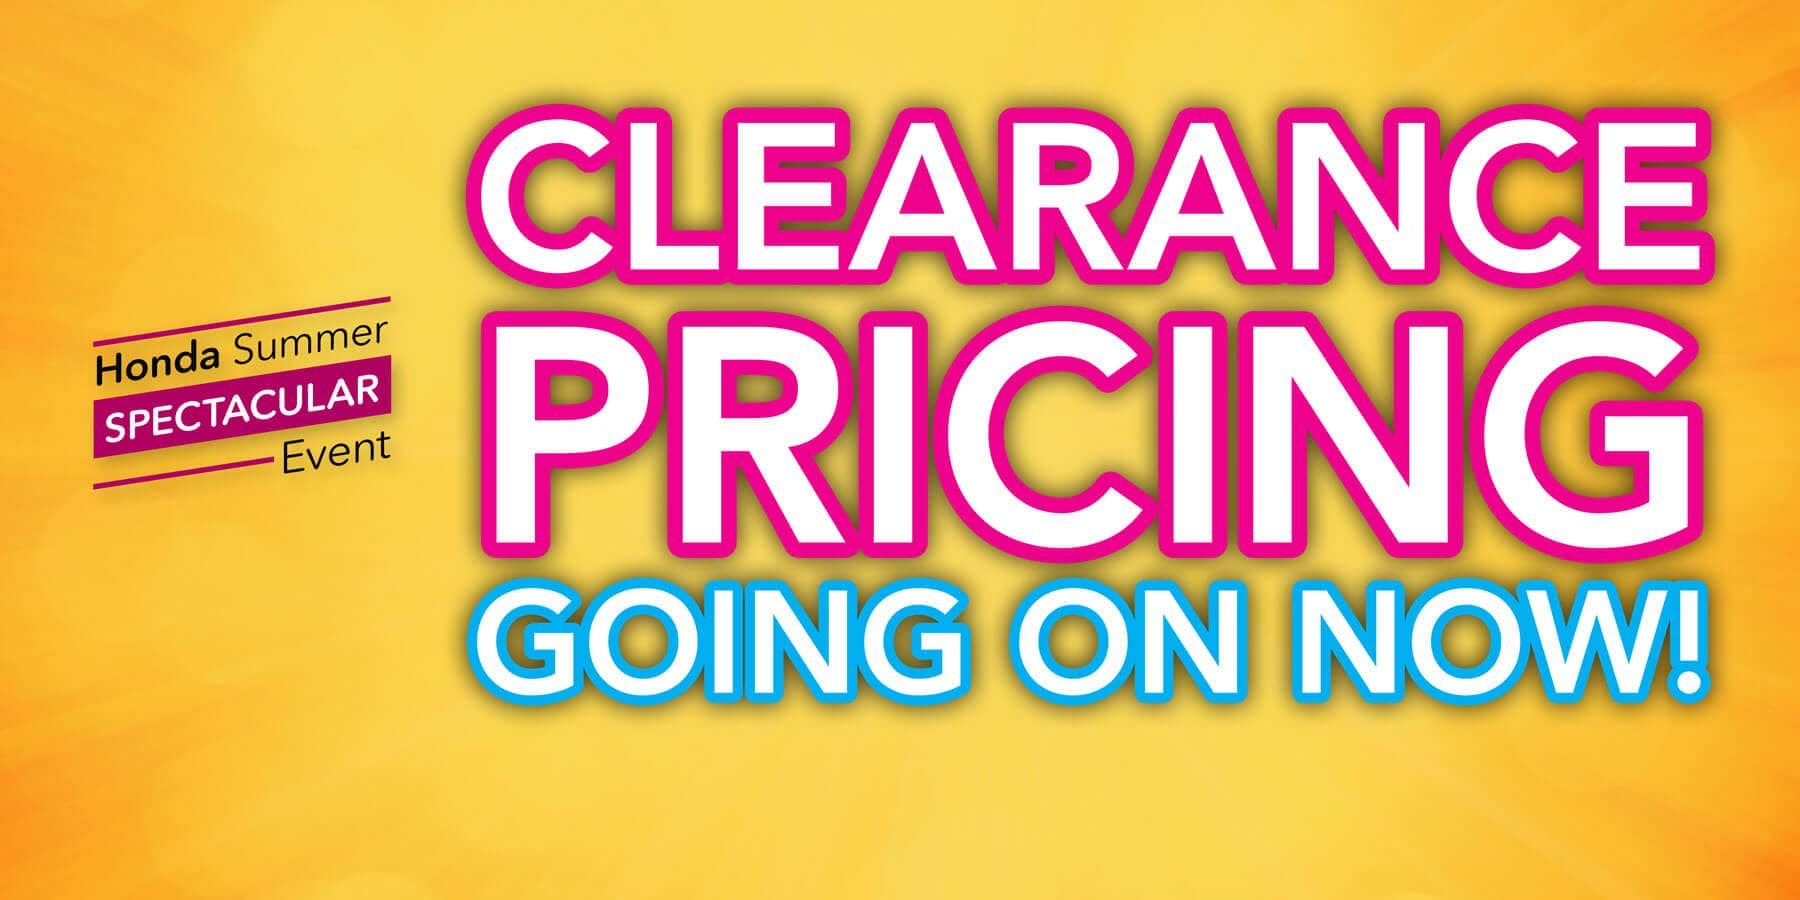 2019 Honda Summer Spectacular Event Clearance Pricing HP Slide